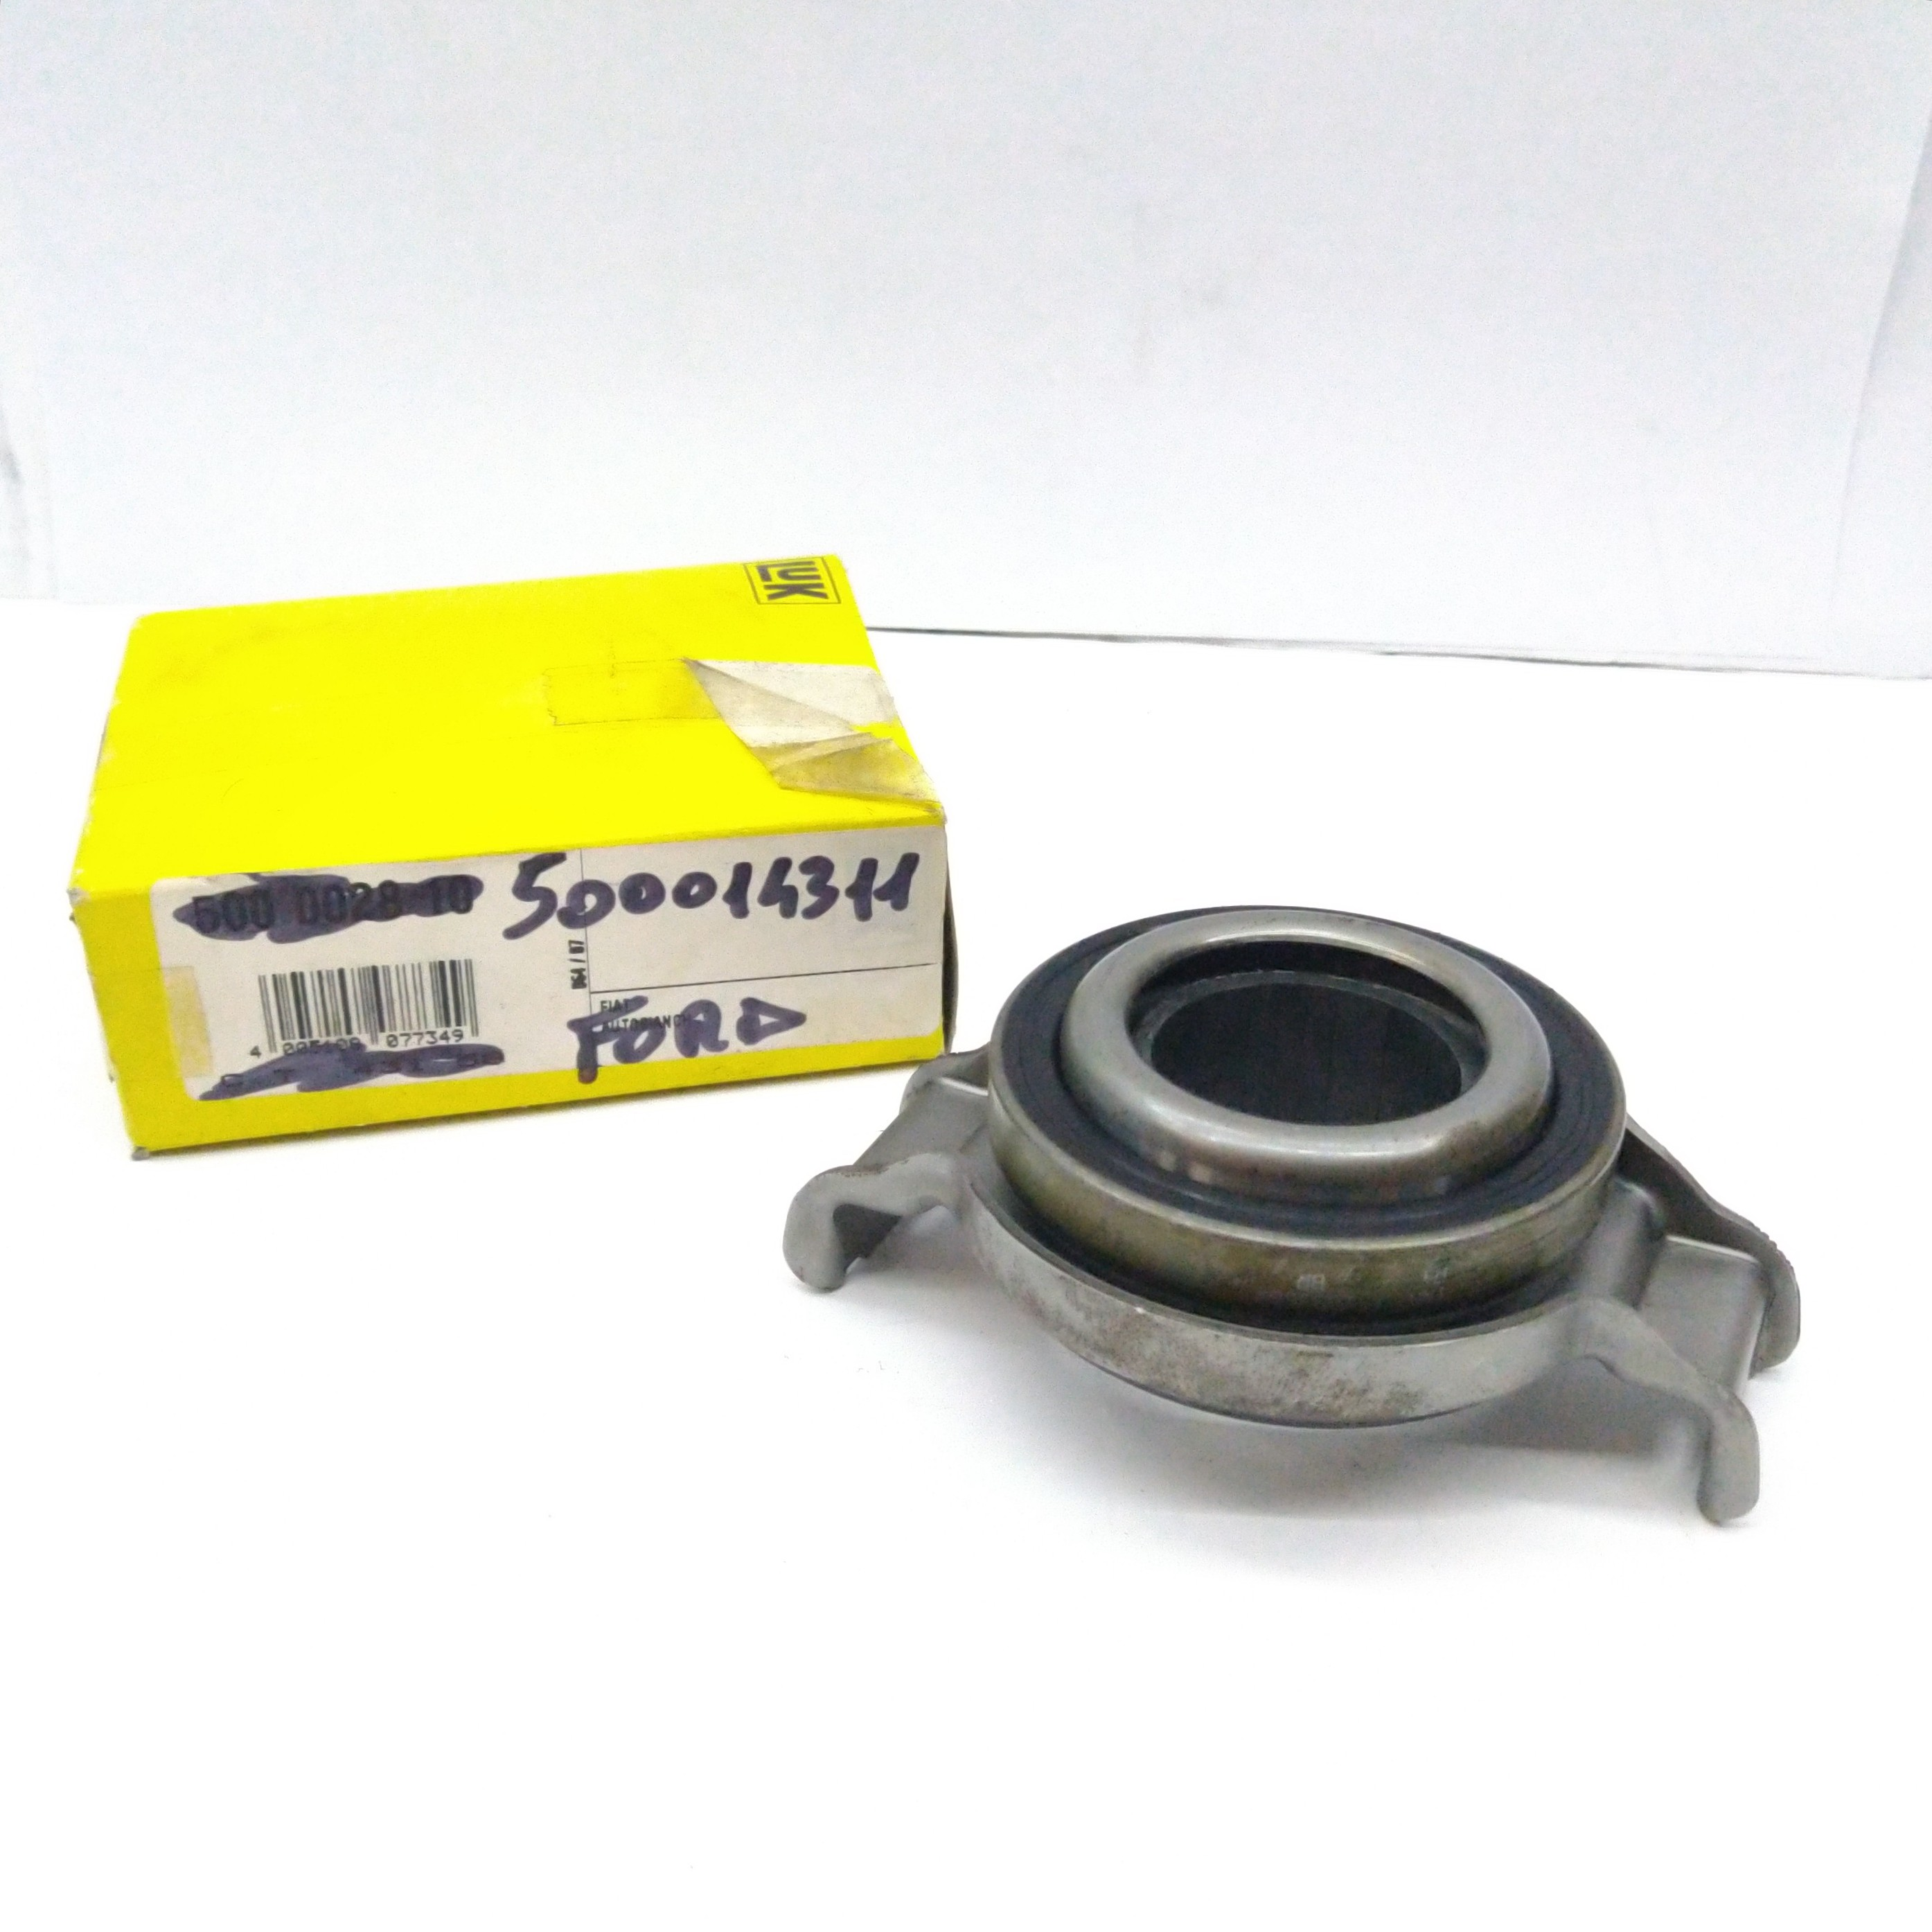 THRUST RELEASE CLUTCH FORD FIESTA - ESCORT - ORION LUK 5027199